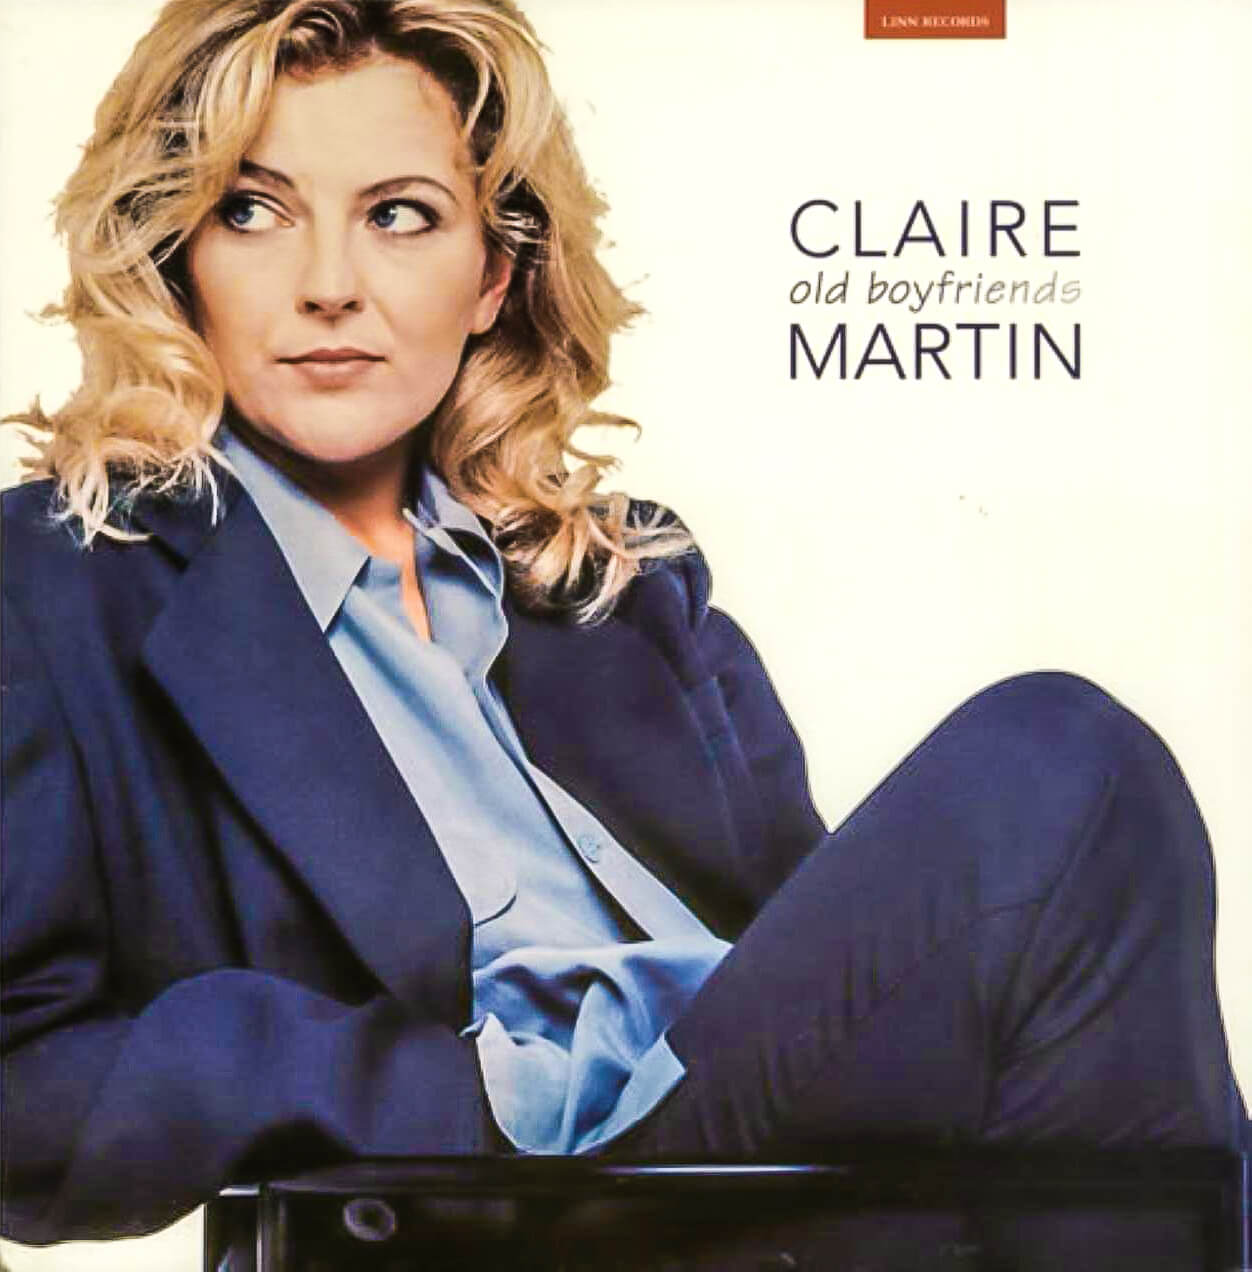 Claire Martin - Old Boyfriends